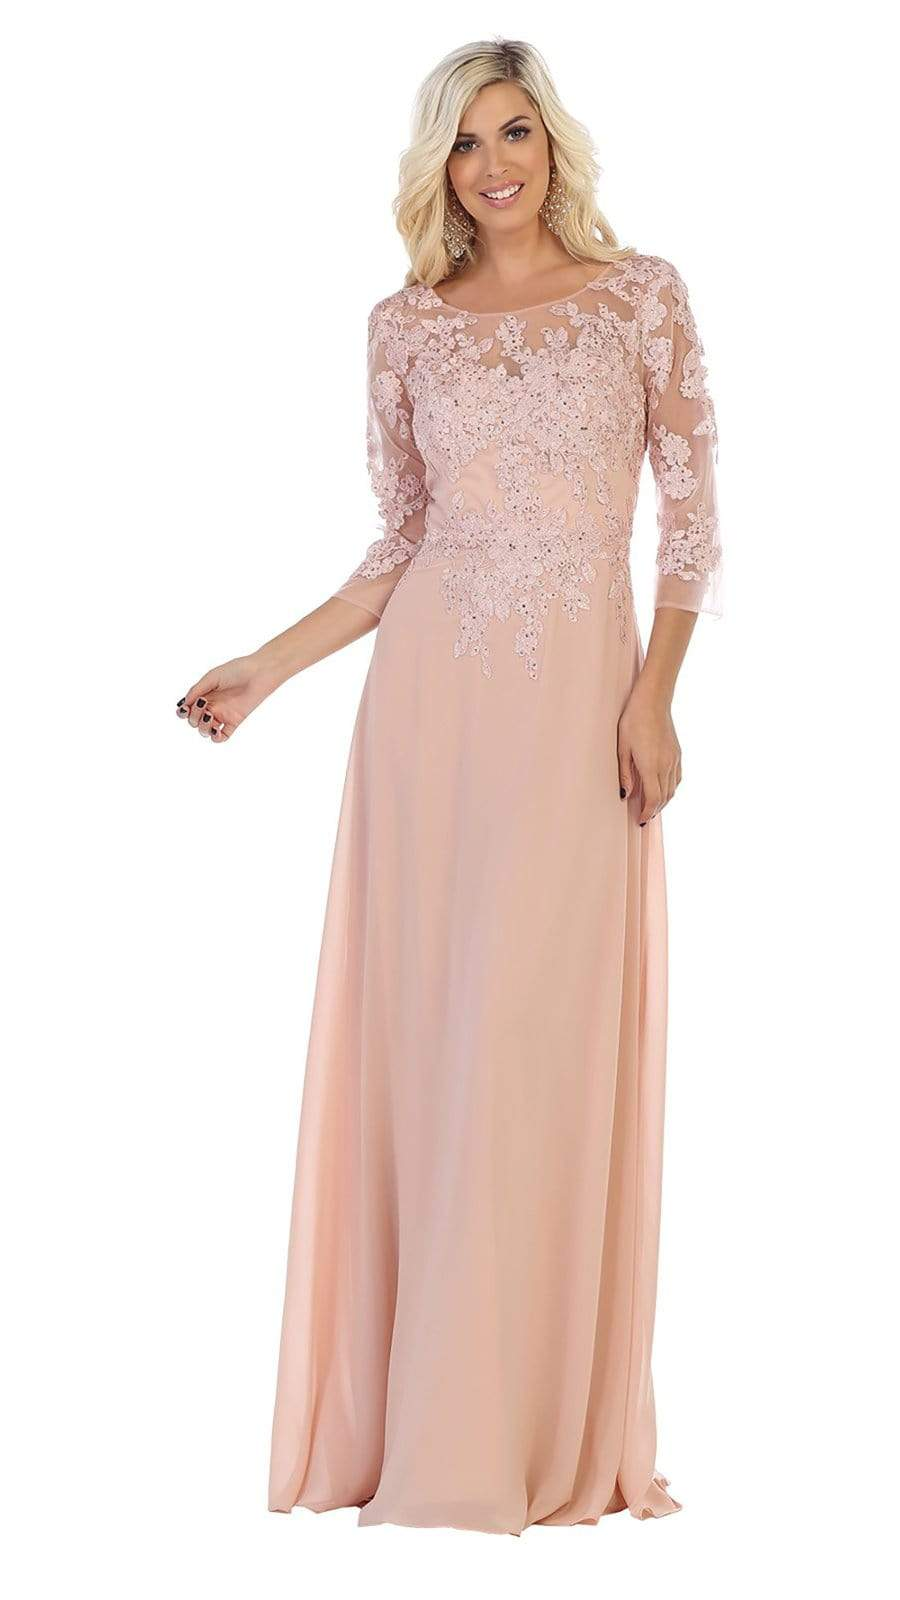 May Queen - MQ1637 Illusion Quarter Sleeve Appliqued Sheath Gown Special Occasion Dress M / Dusty Rose